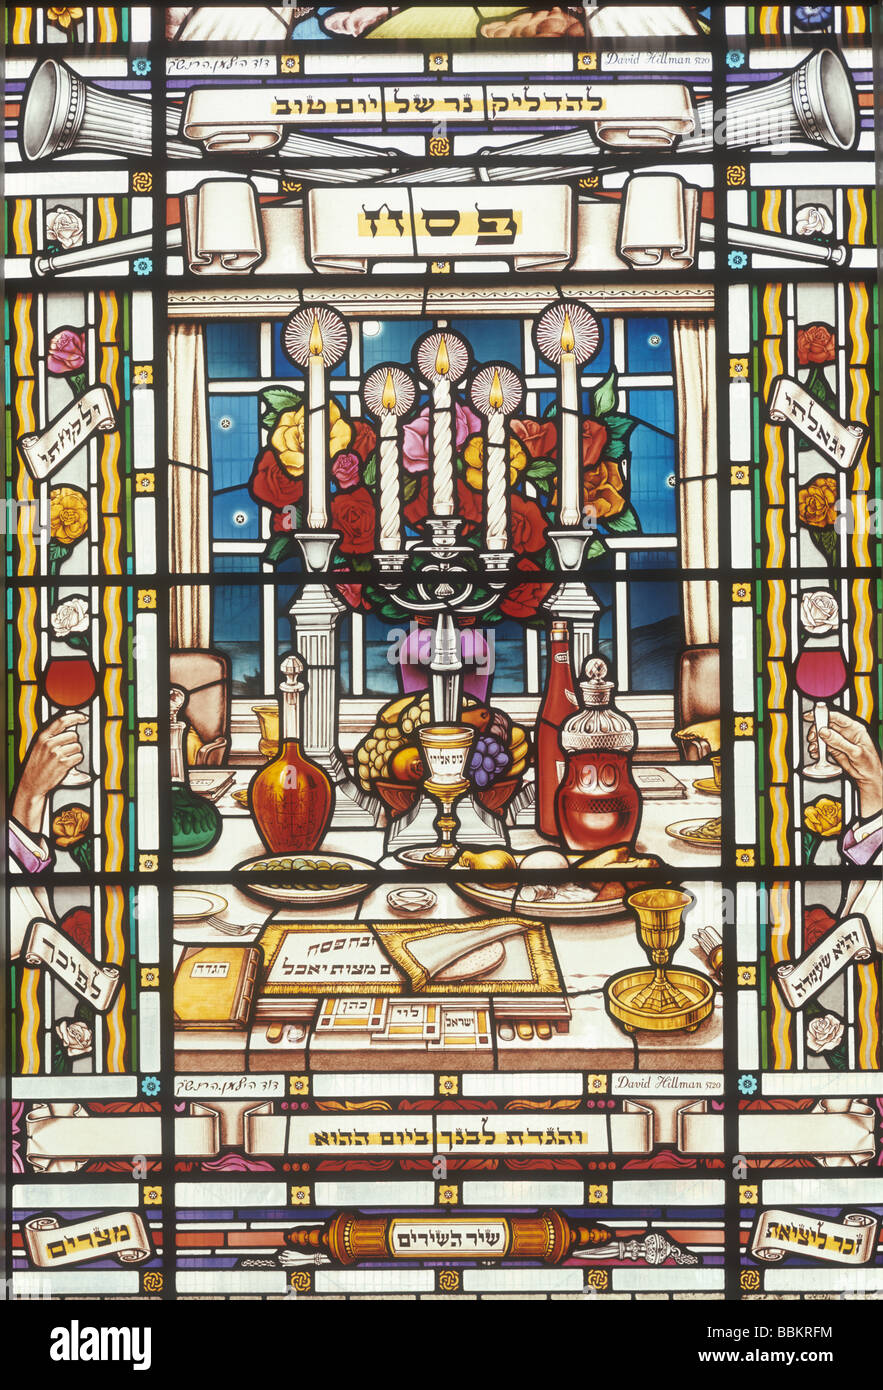 Pesach Seder Table Central Synagogue Great Portland Street London - Stock Image